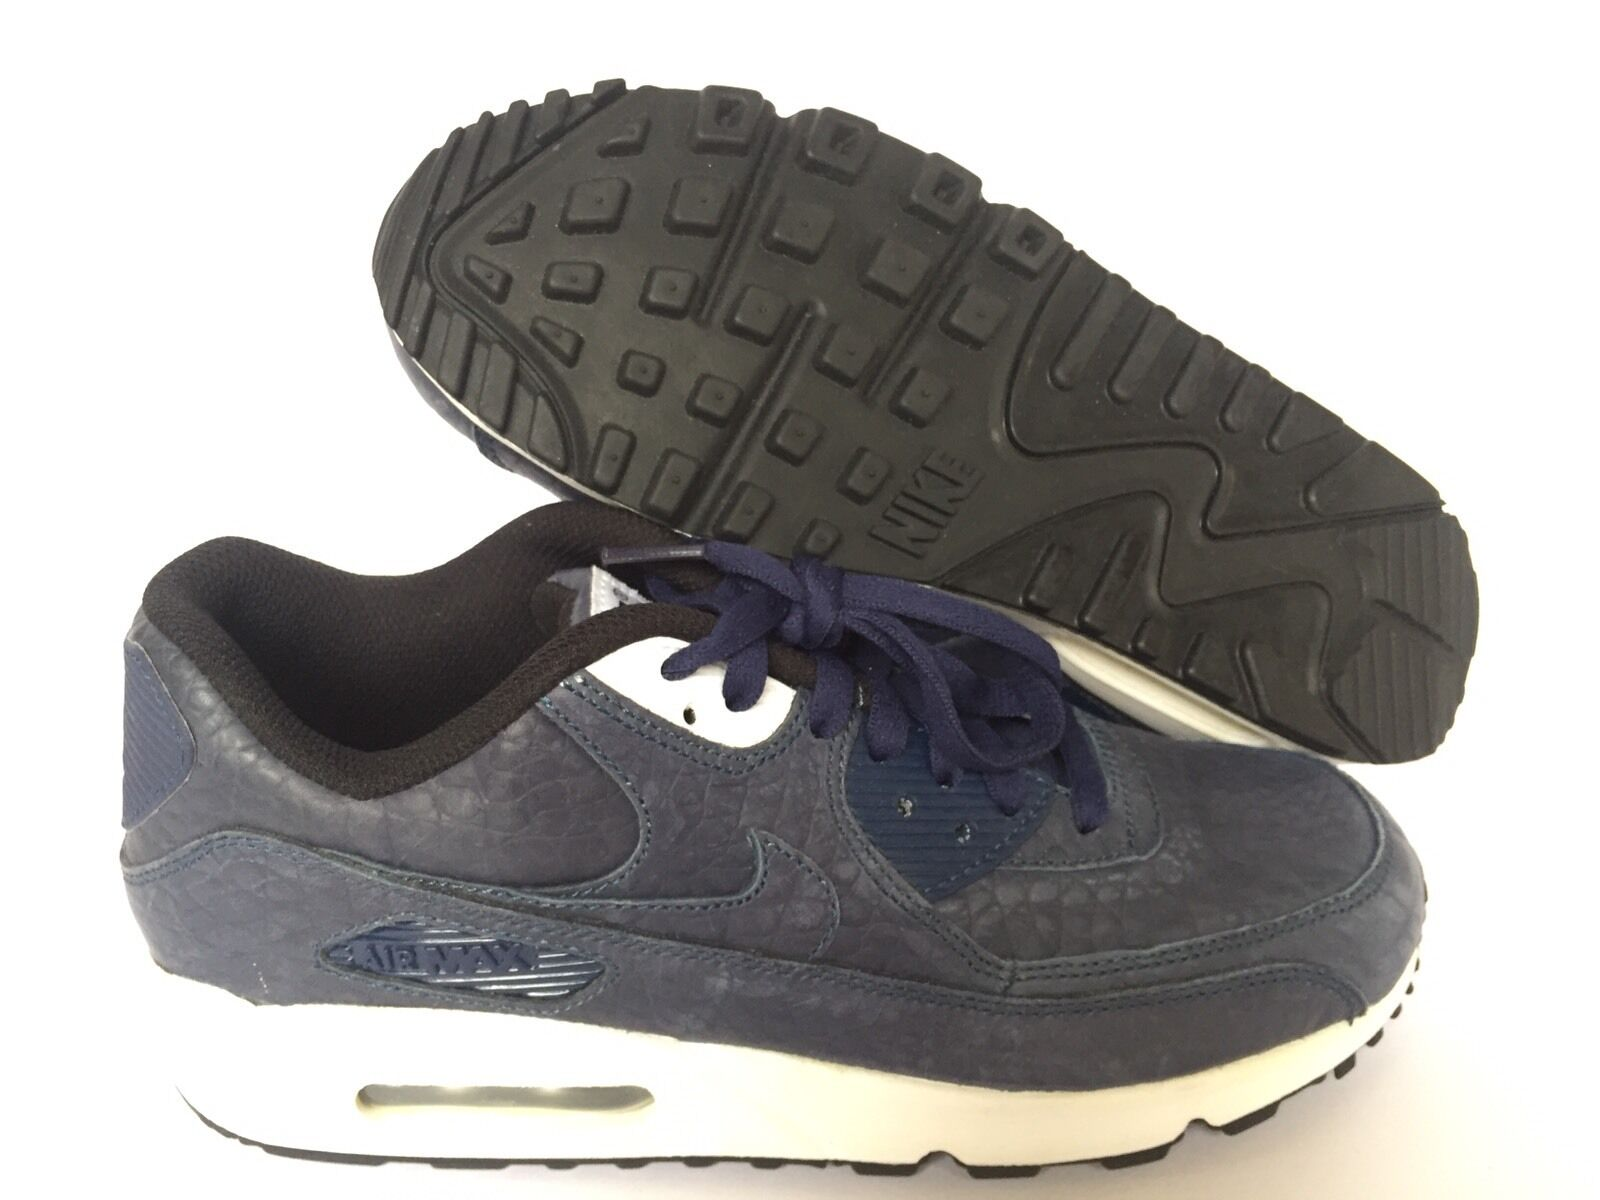 NIKE AIR MAX ID Dark Blue LEATHER [708279-991] US Uomo SZ 7.5